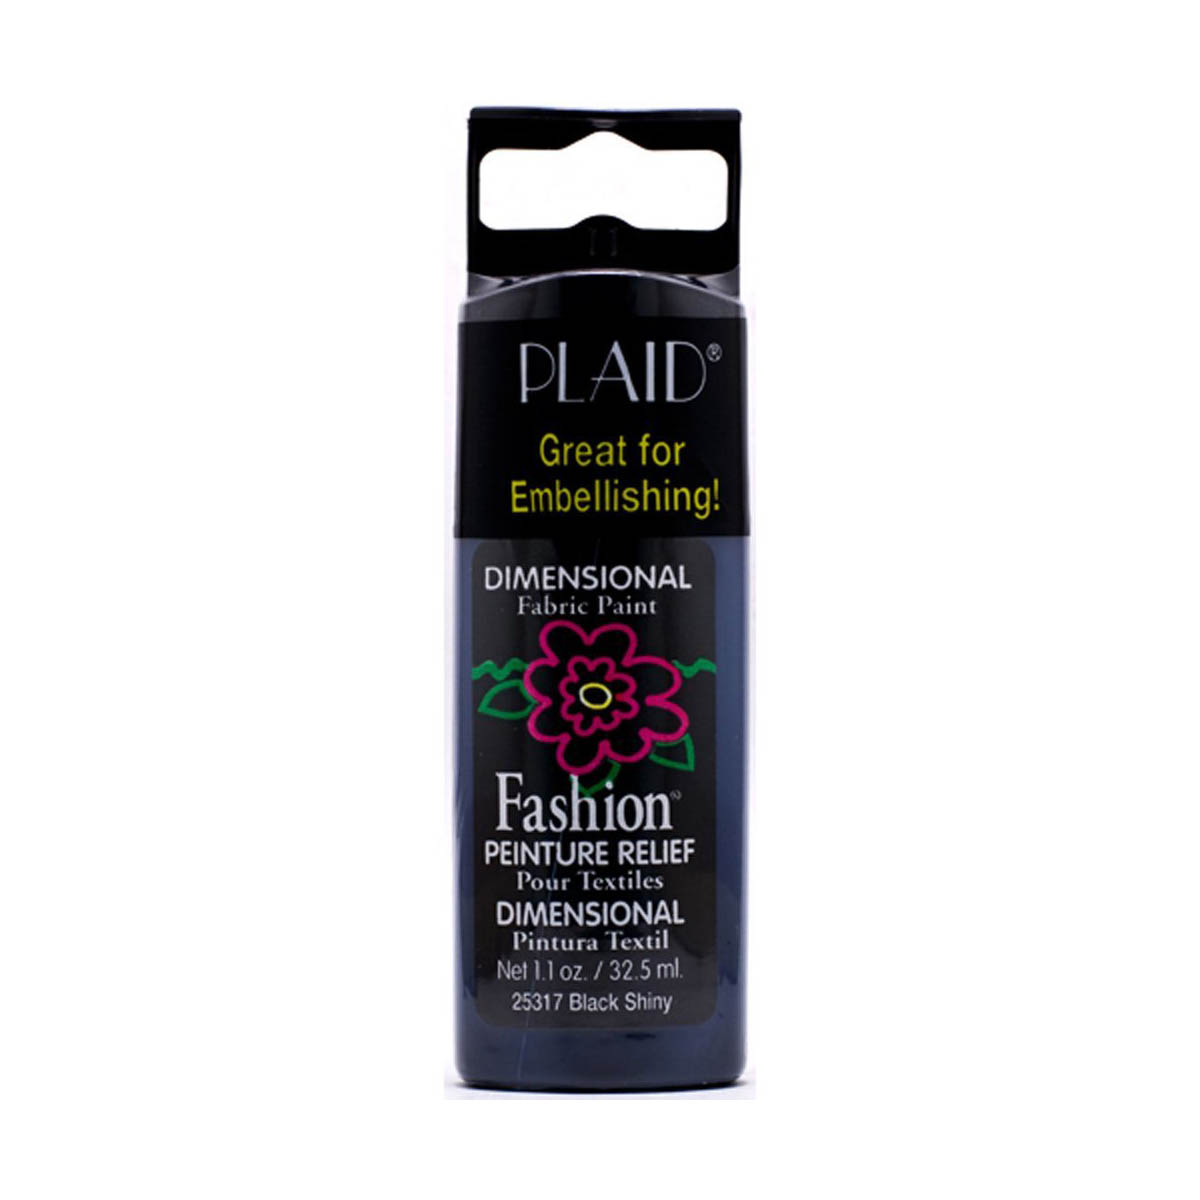 Fashion ® Dimensional Fabric Paint  - Shiny - Black